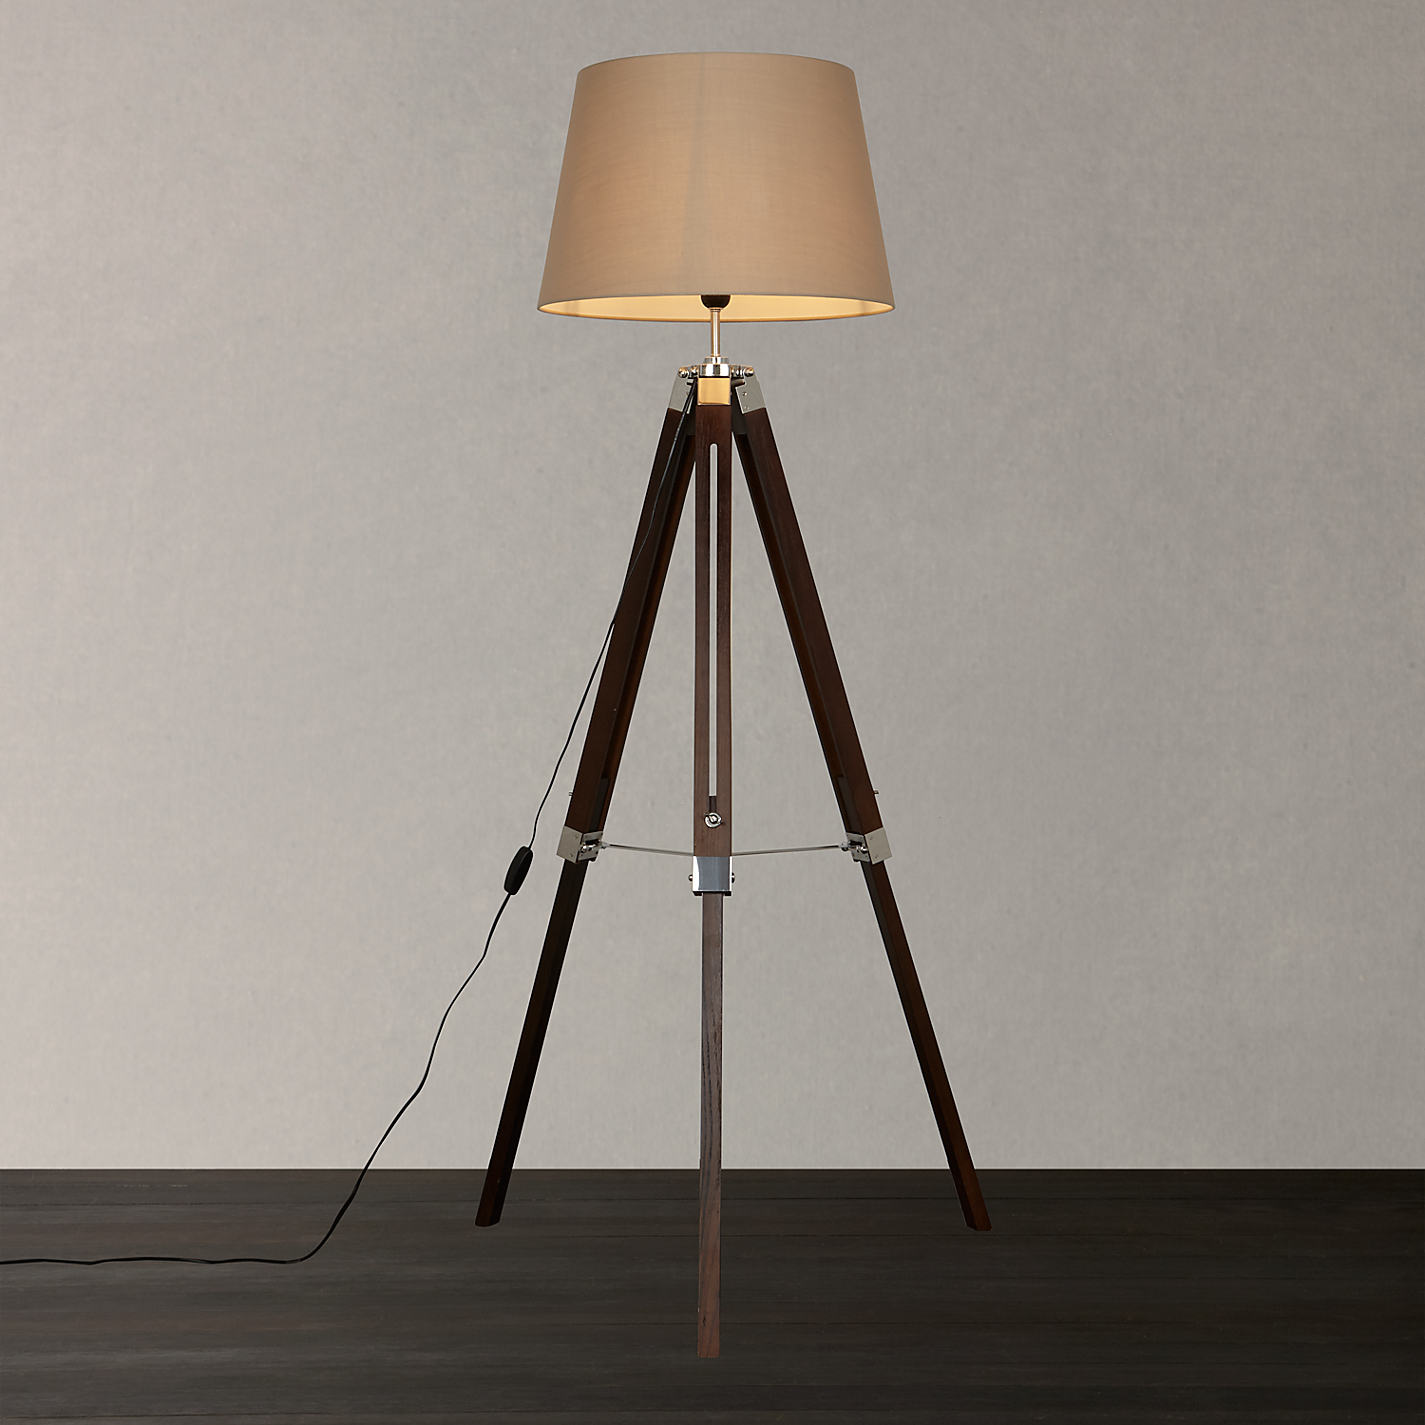 Tripod Lampe Decor Awesome Tripod Lamp For Interior Lighting Ideas